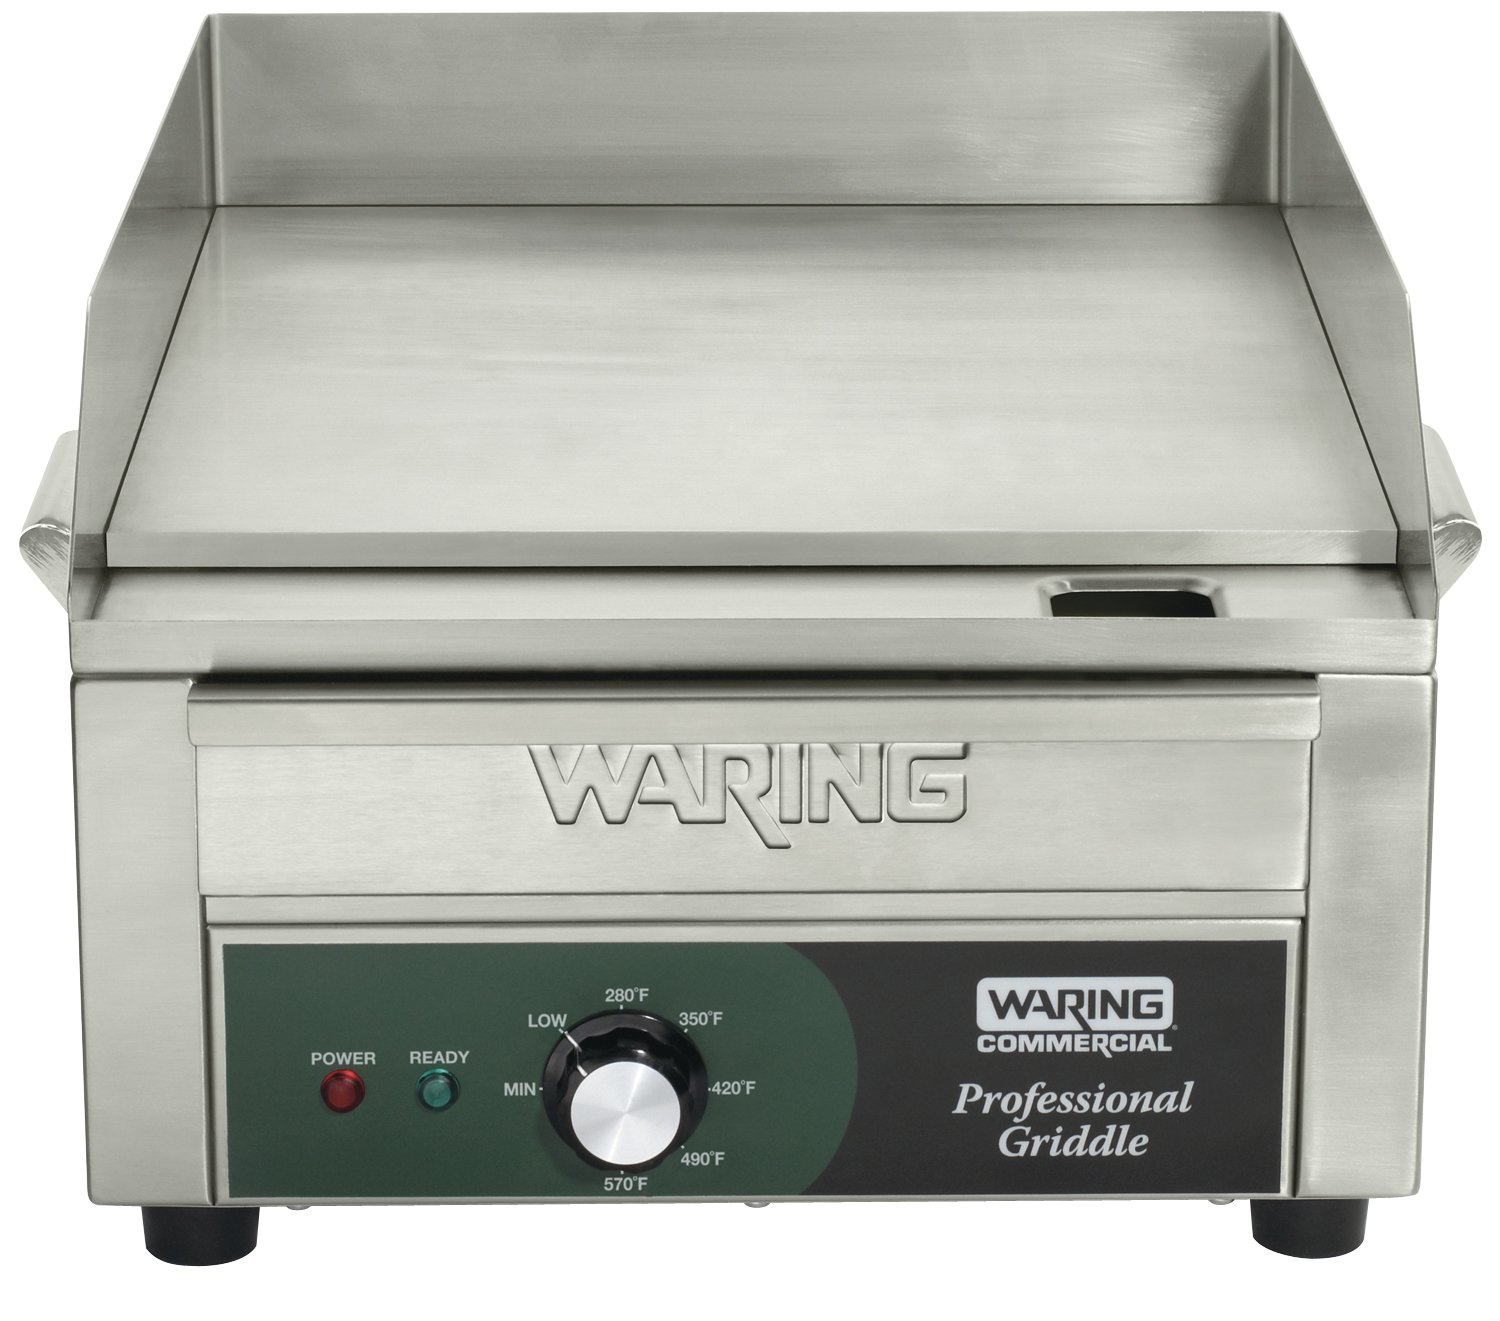 Waring Commercial WGR140 120-volt Electric Countertop Griddle, 14-Inch product image